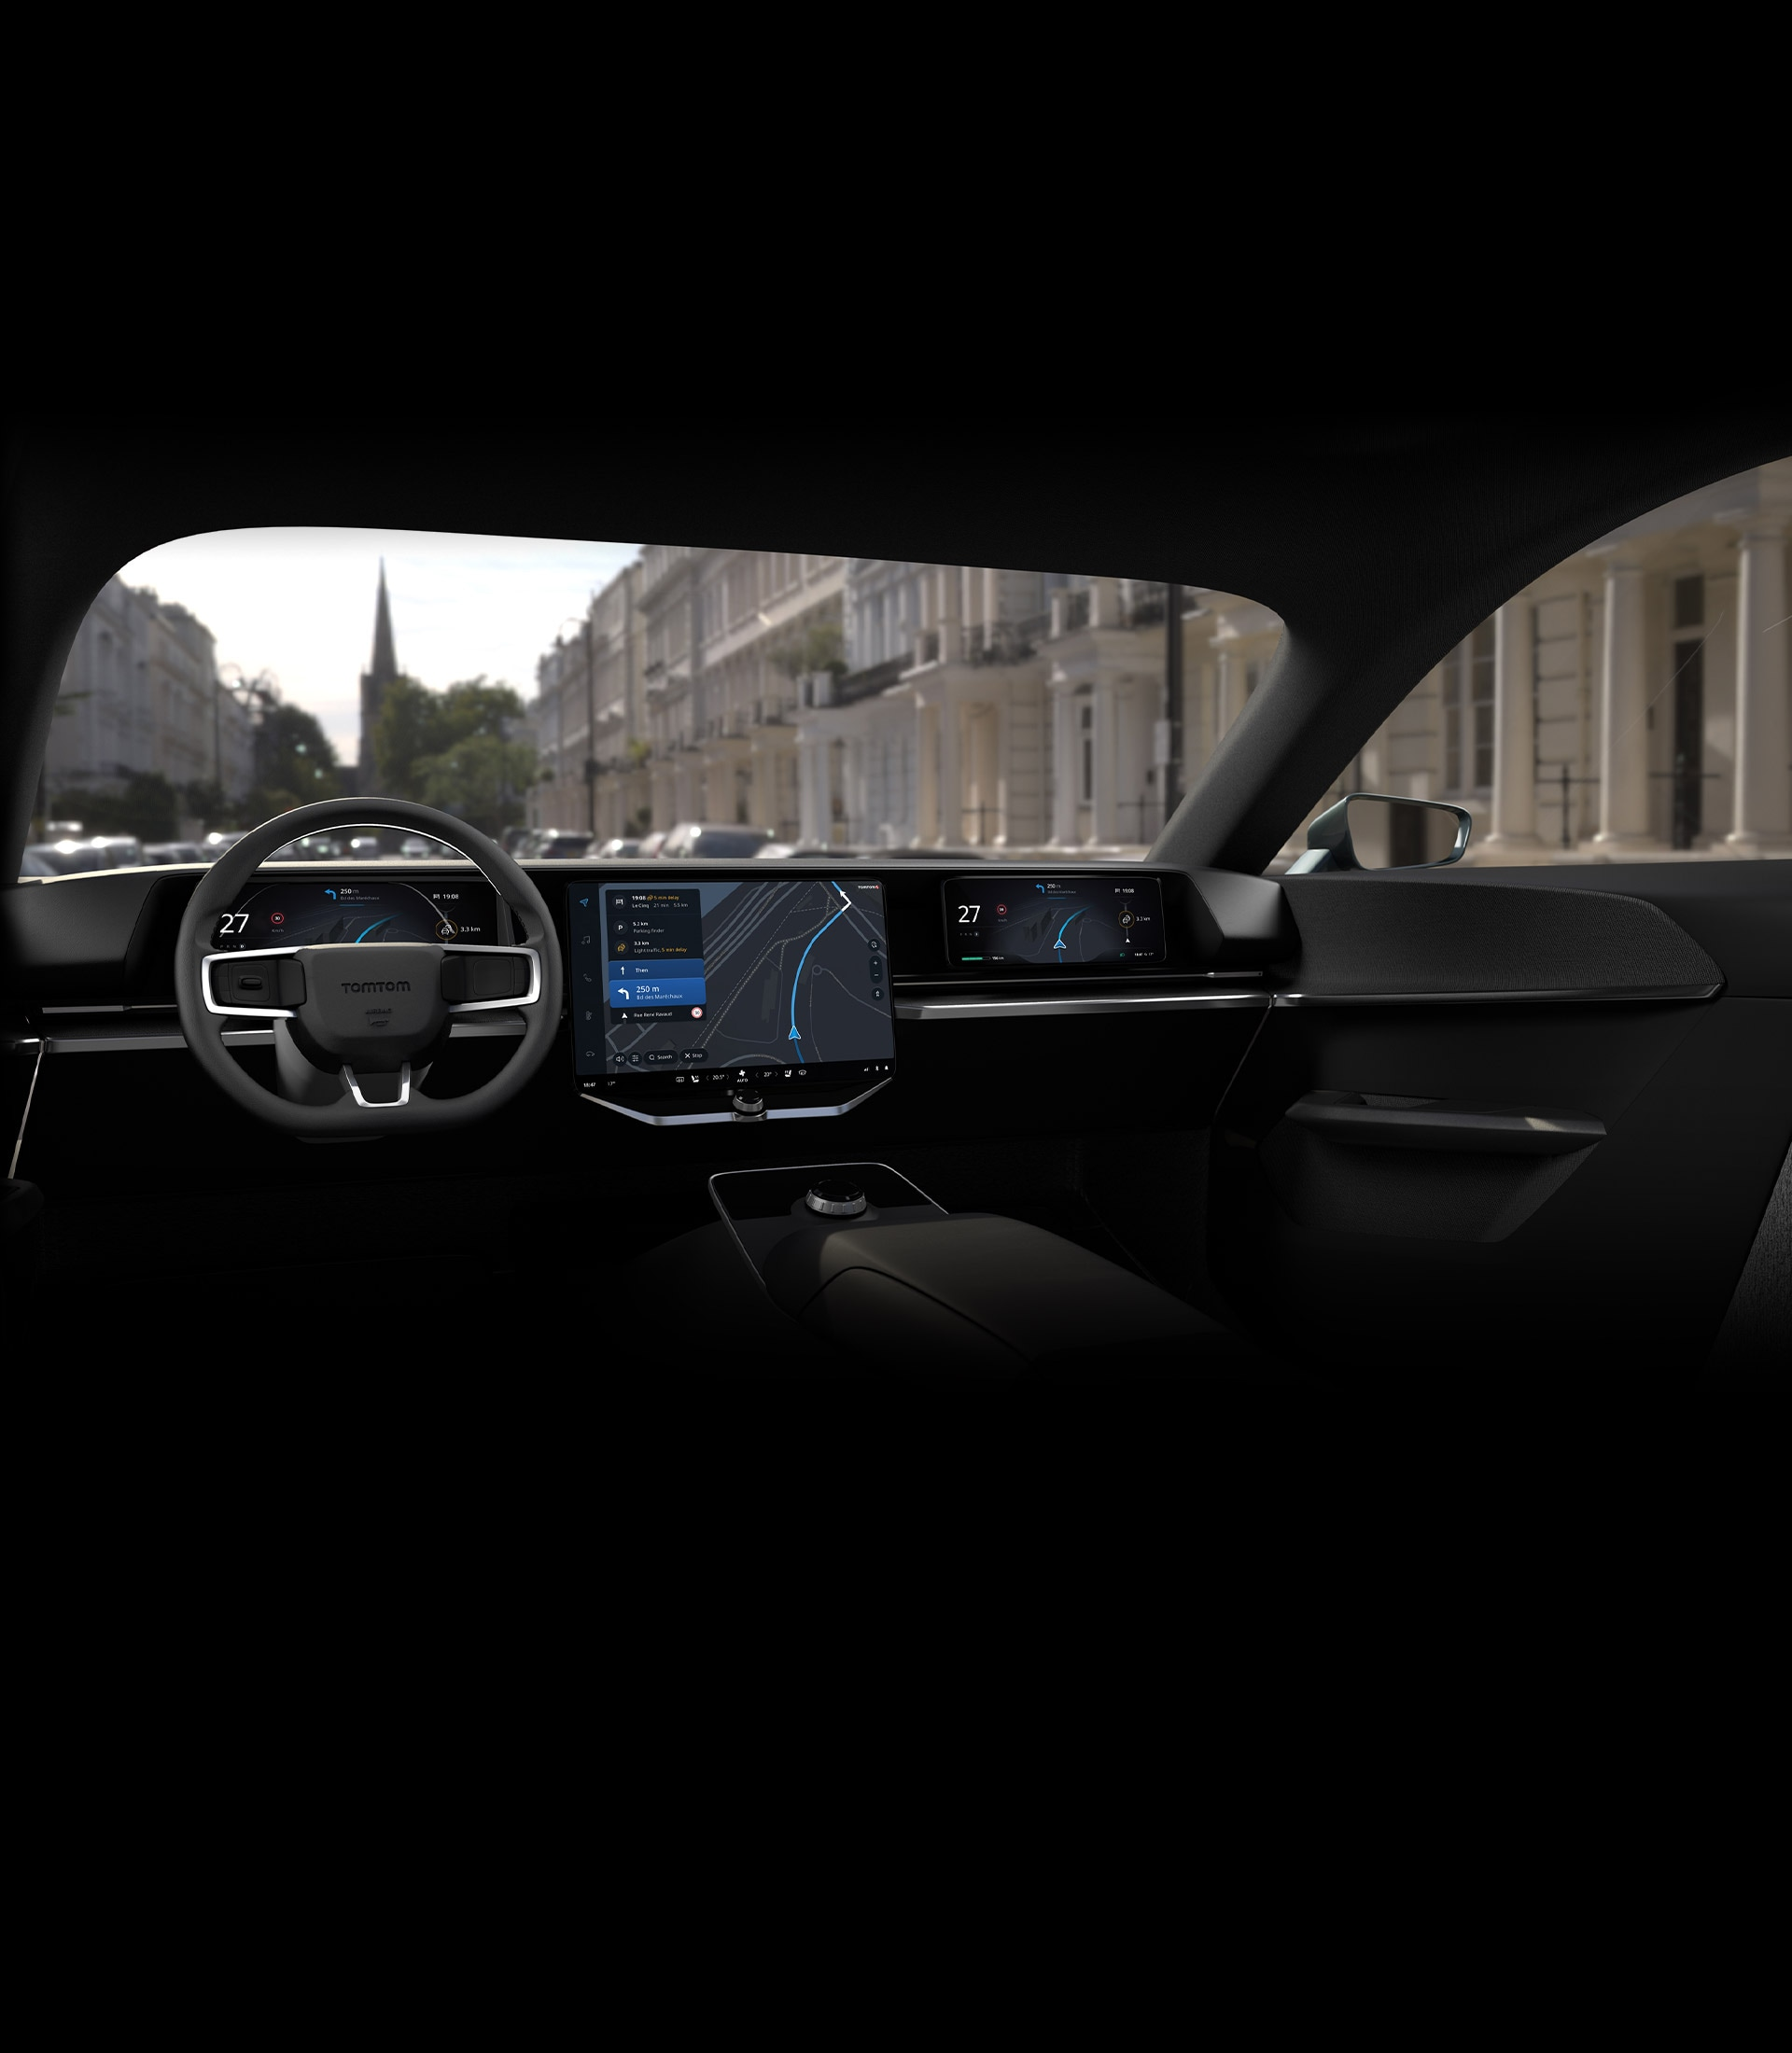 TomTom Navigation for Automotive